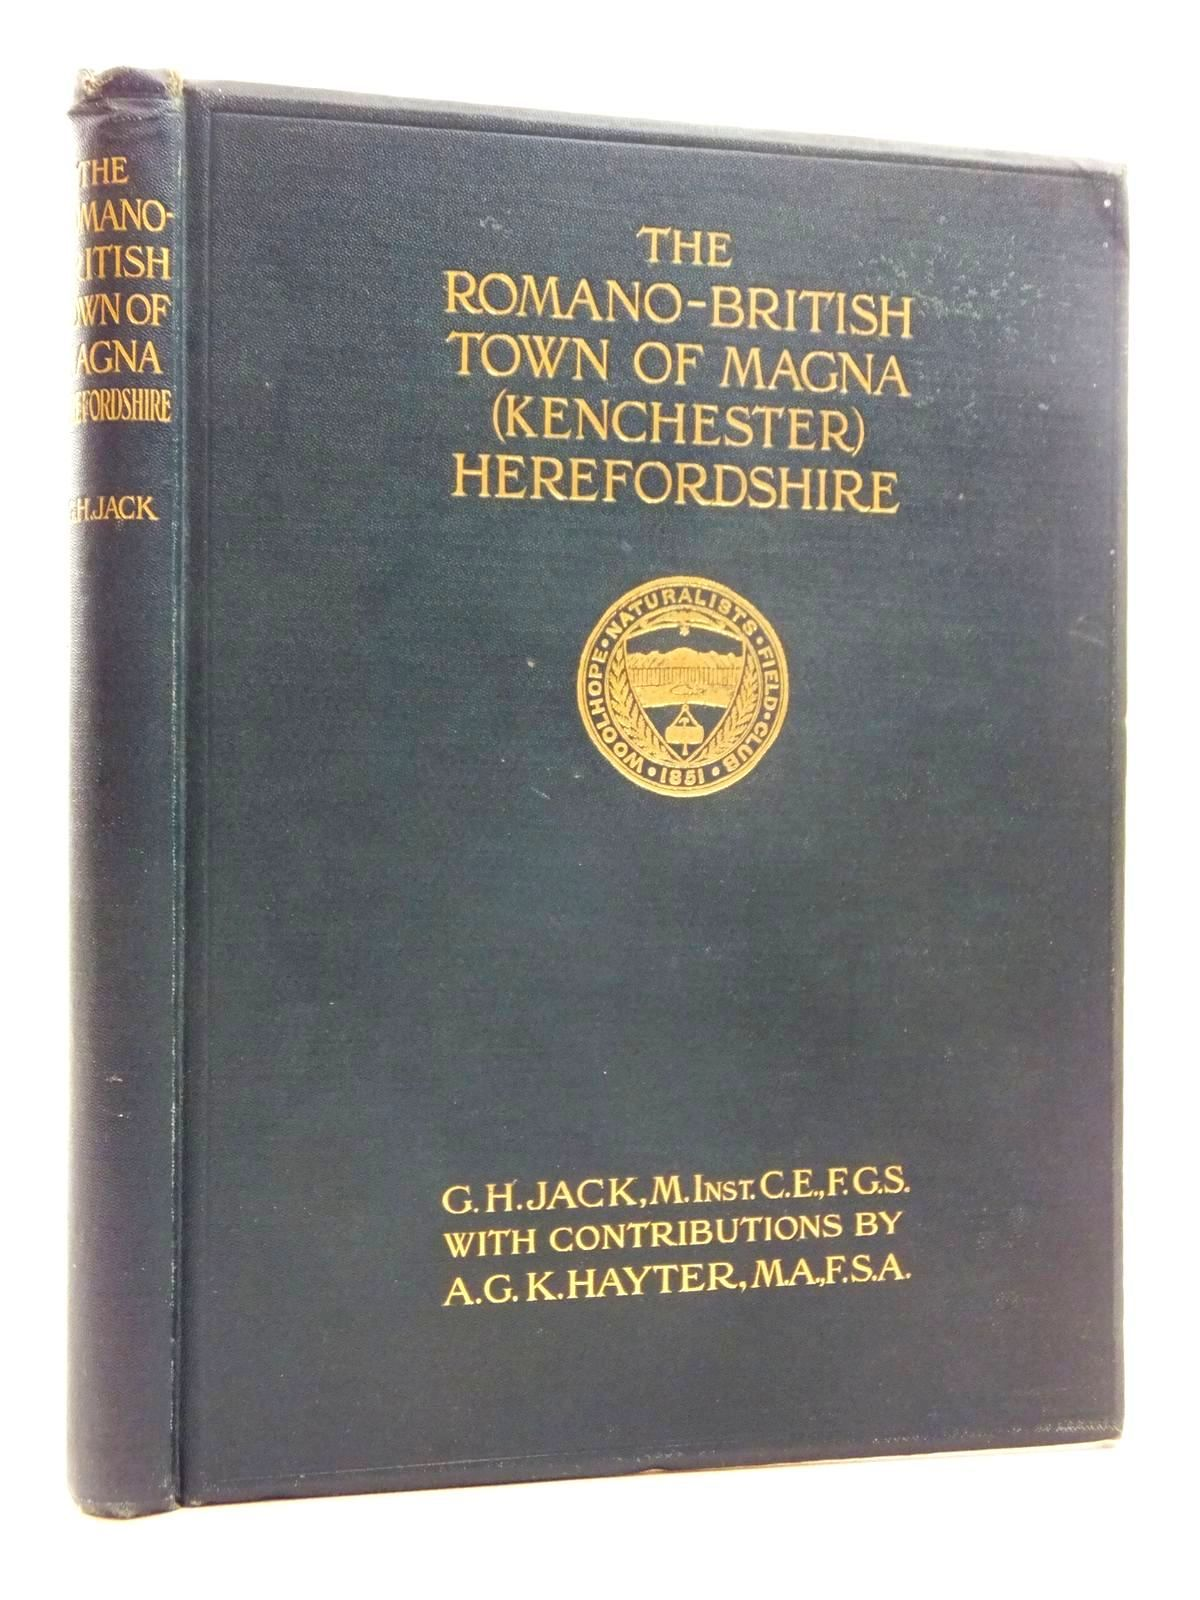 Photo of EXCAVATIONS ON THE SITE OF THE ROMANO-BRITISH TOWN OF MAGNA, KENCHESTER, HEREFORDSHIRE, DURING THE YEARS 1912-13 written by Jack, G.H. Hayter, A.G.K. (STOCK CODE: 2123521)  for sale by Stella & Rose's Books